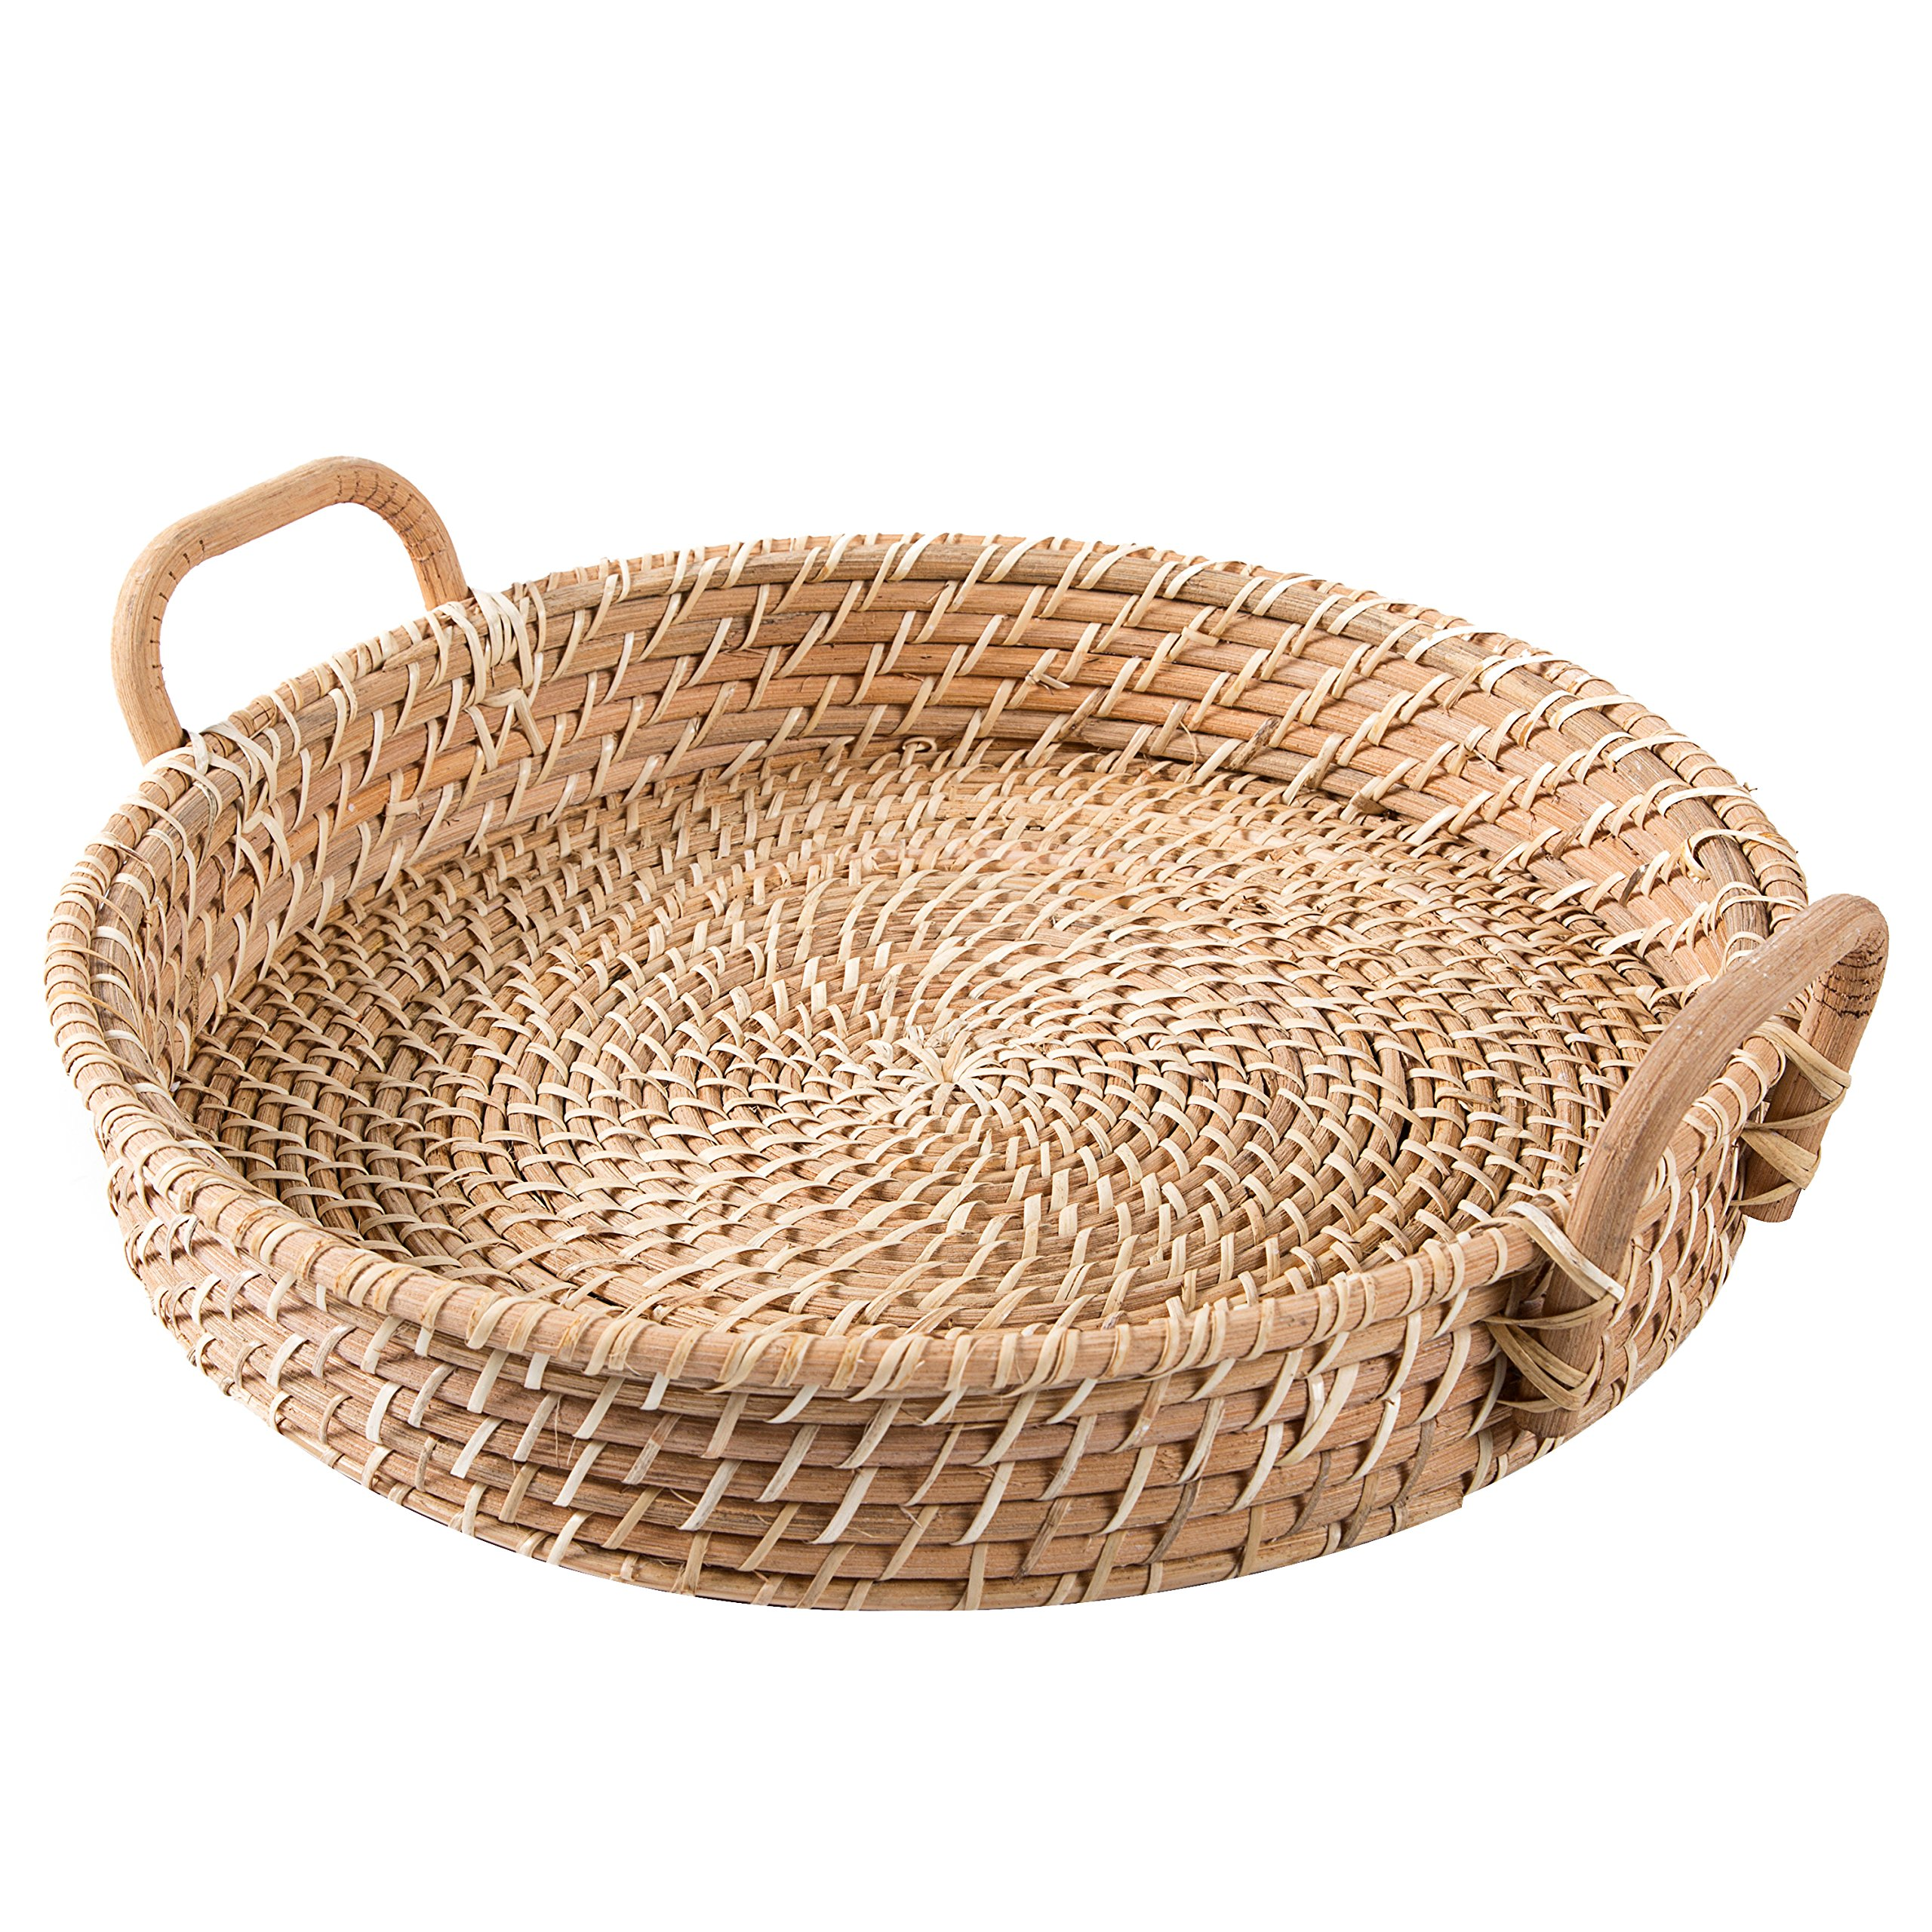 18 Inch Round Hand Woven Rattan Kitchen Fruit Produce Bread Basket Serving Tray with Wood Handles